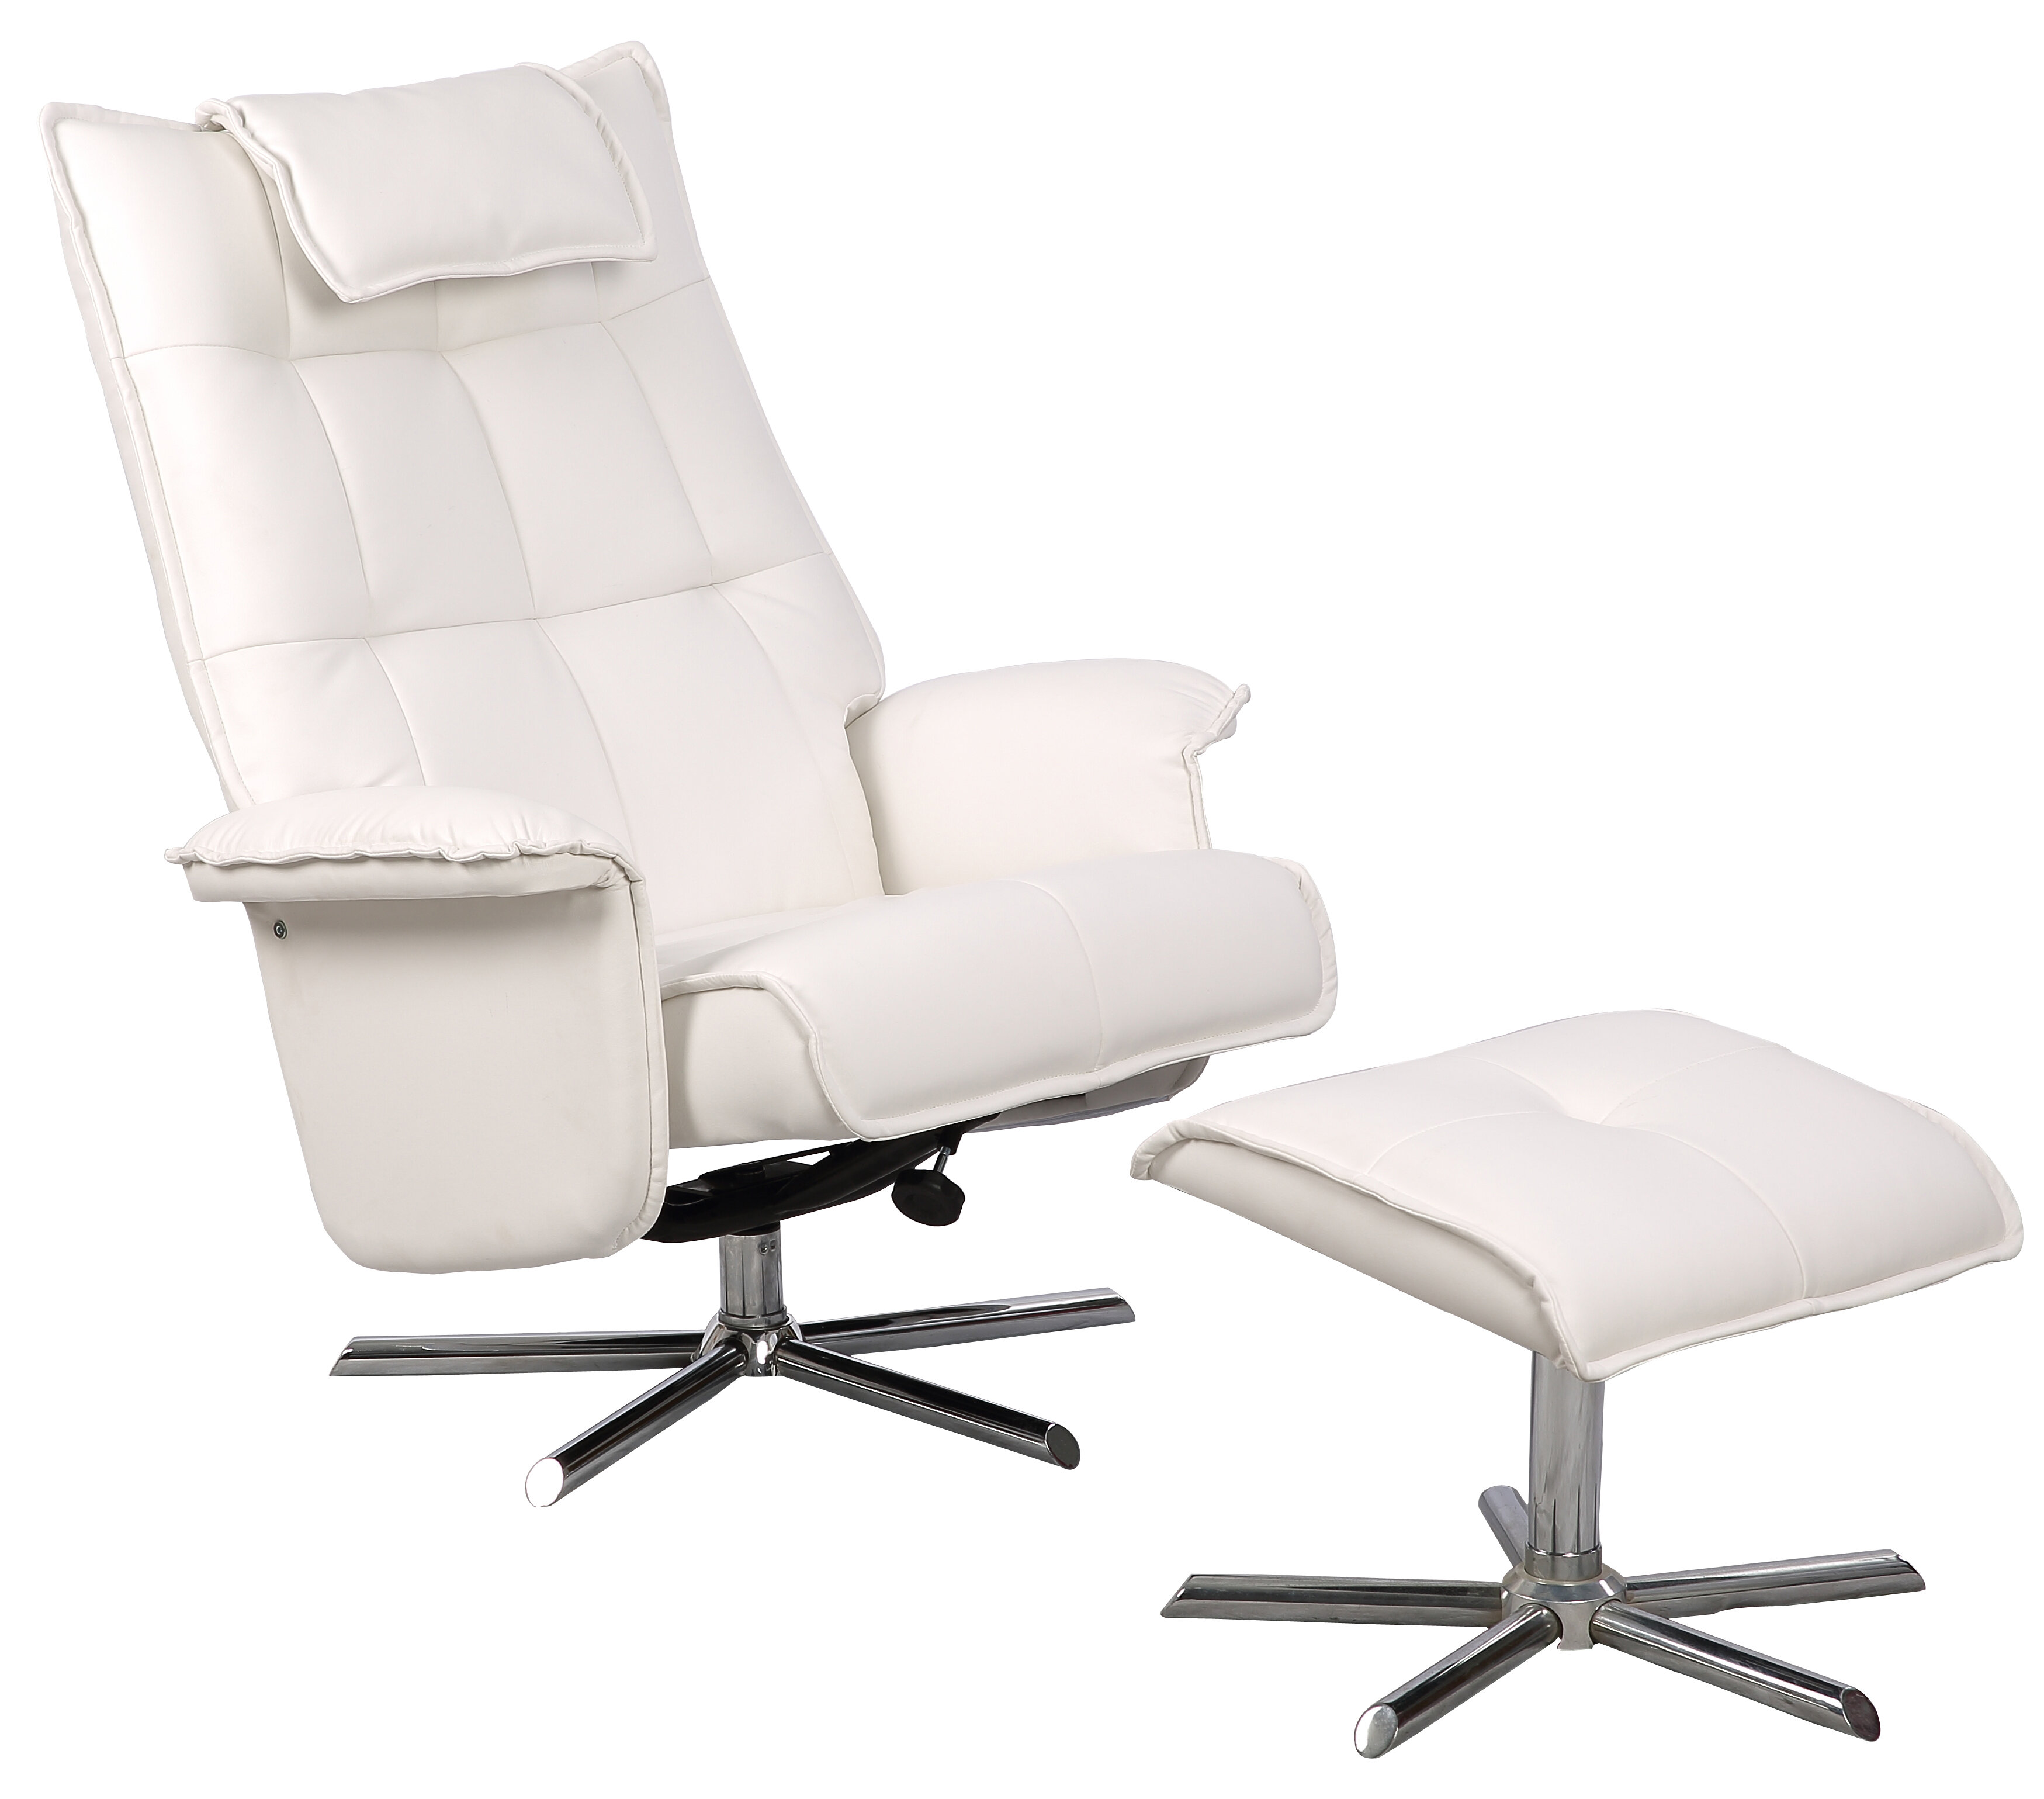 Sensational Finkelstein Manual Swivel Recliner With Ottoman Ncnpc Chair Design For Home Ncnpcorg